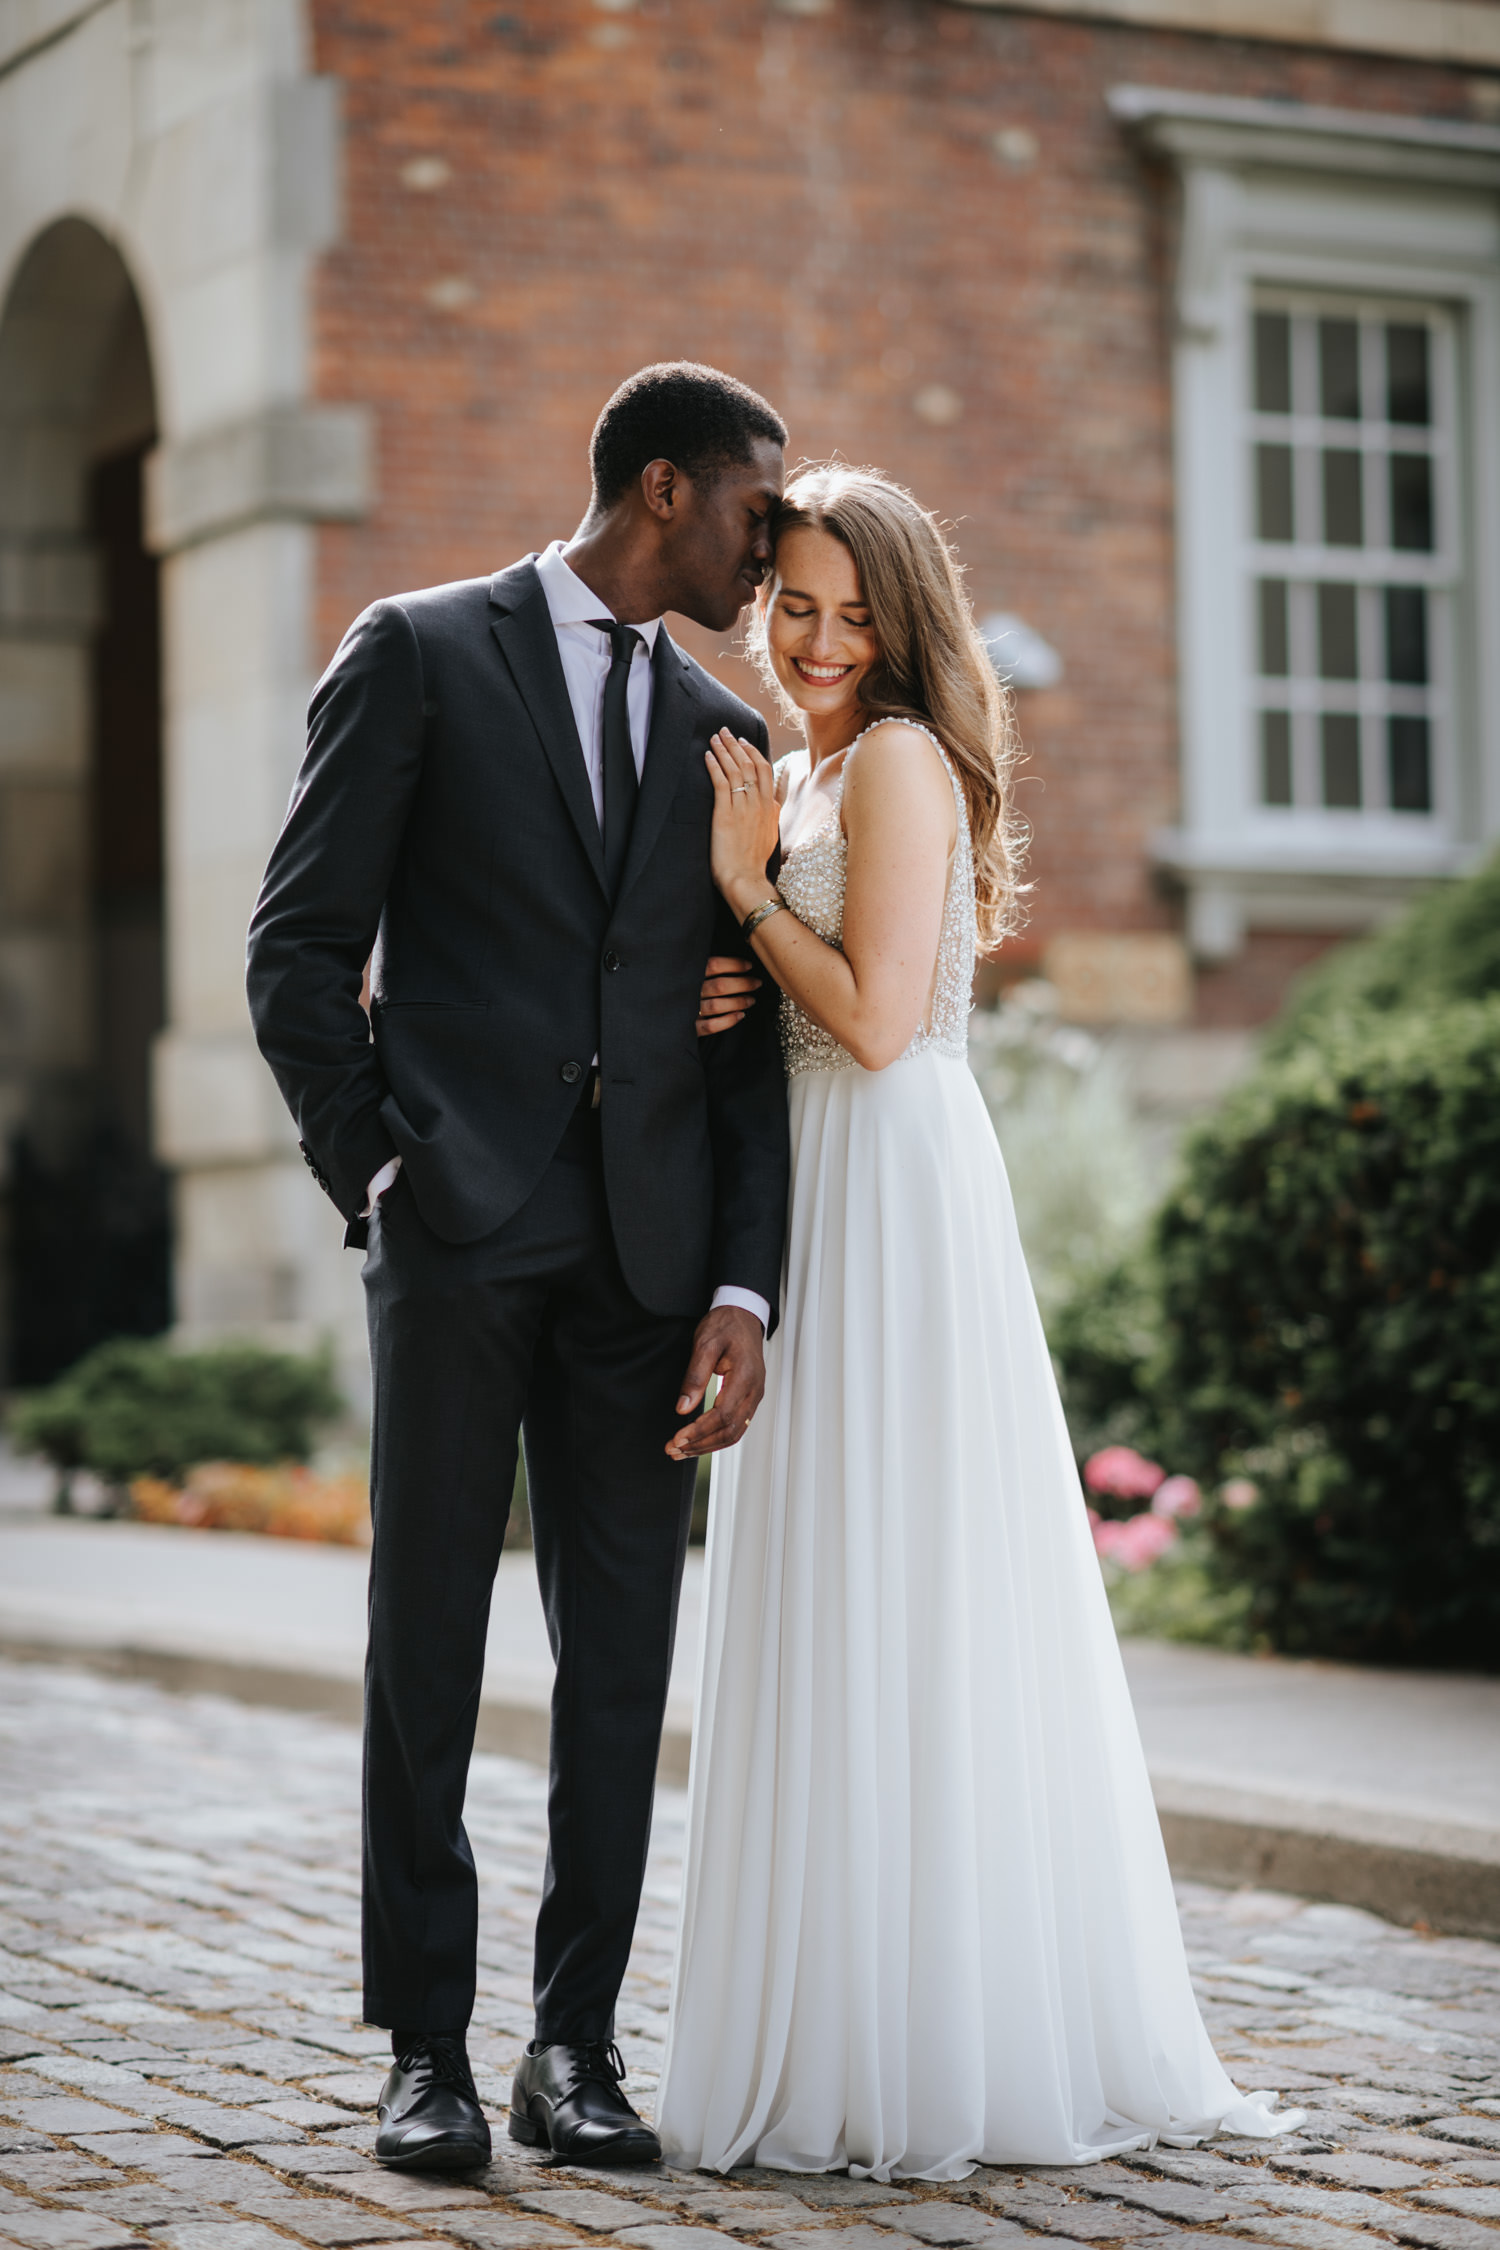 Sunny editorial wedding portrait photography at Osgoode Hall Toronto by eric cheng